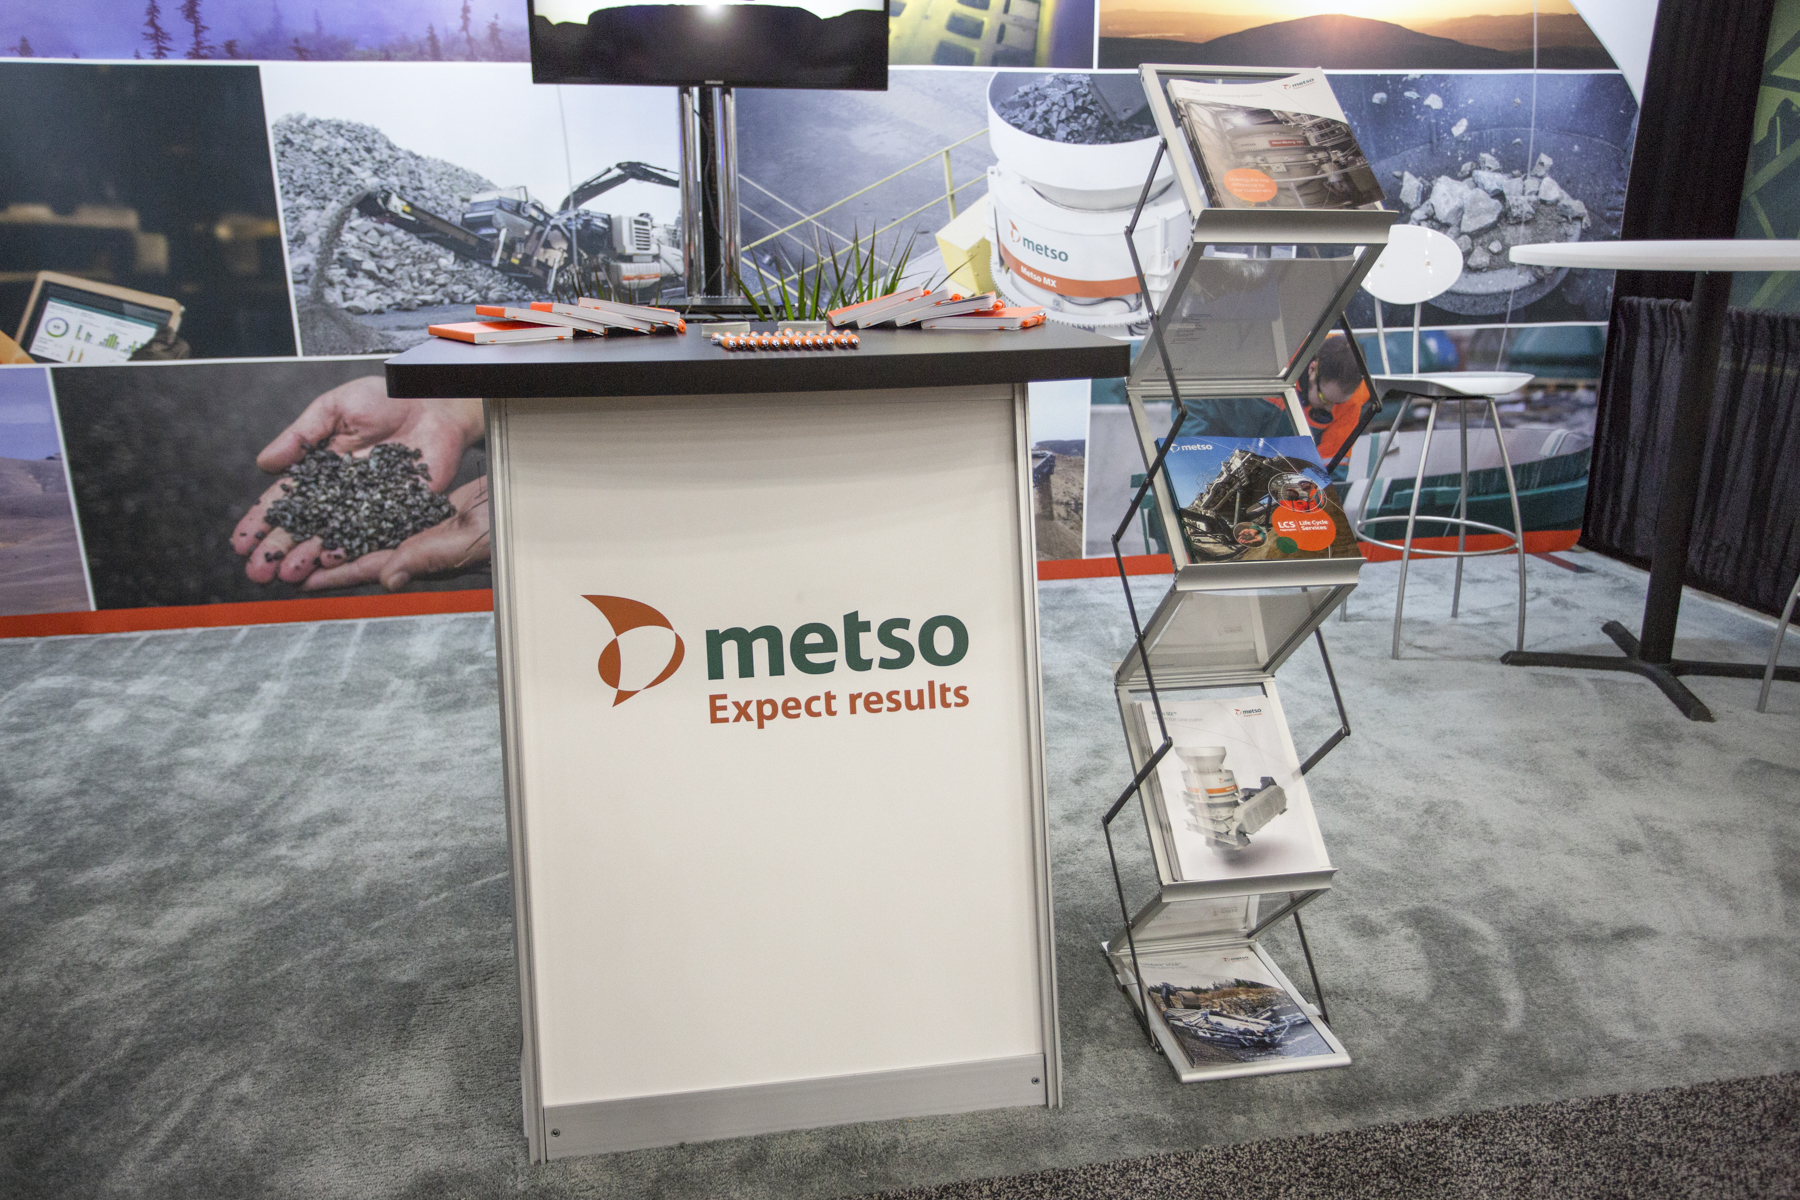 Metso - Event Photography by Brian Austin